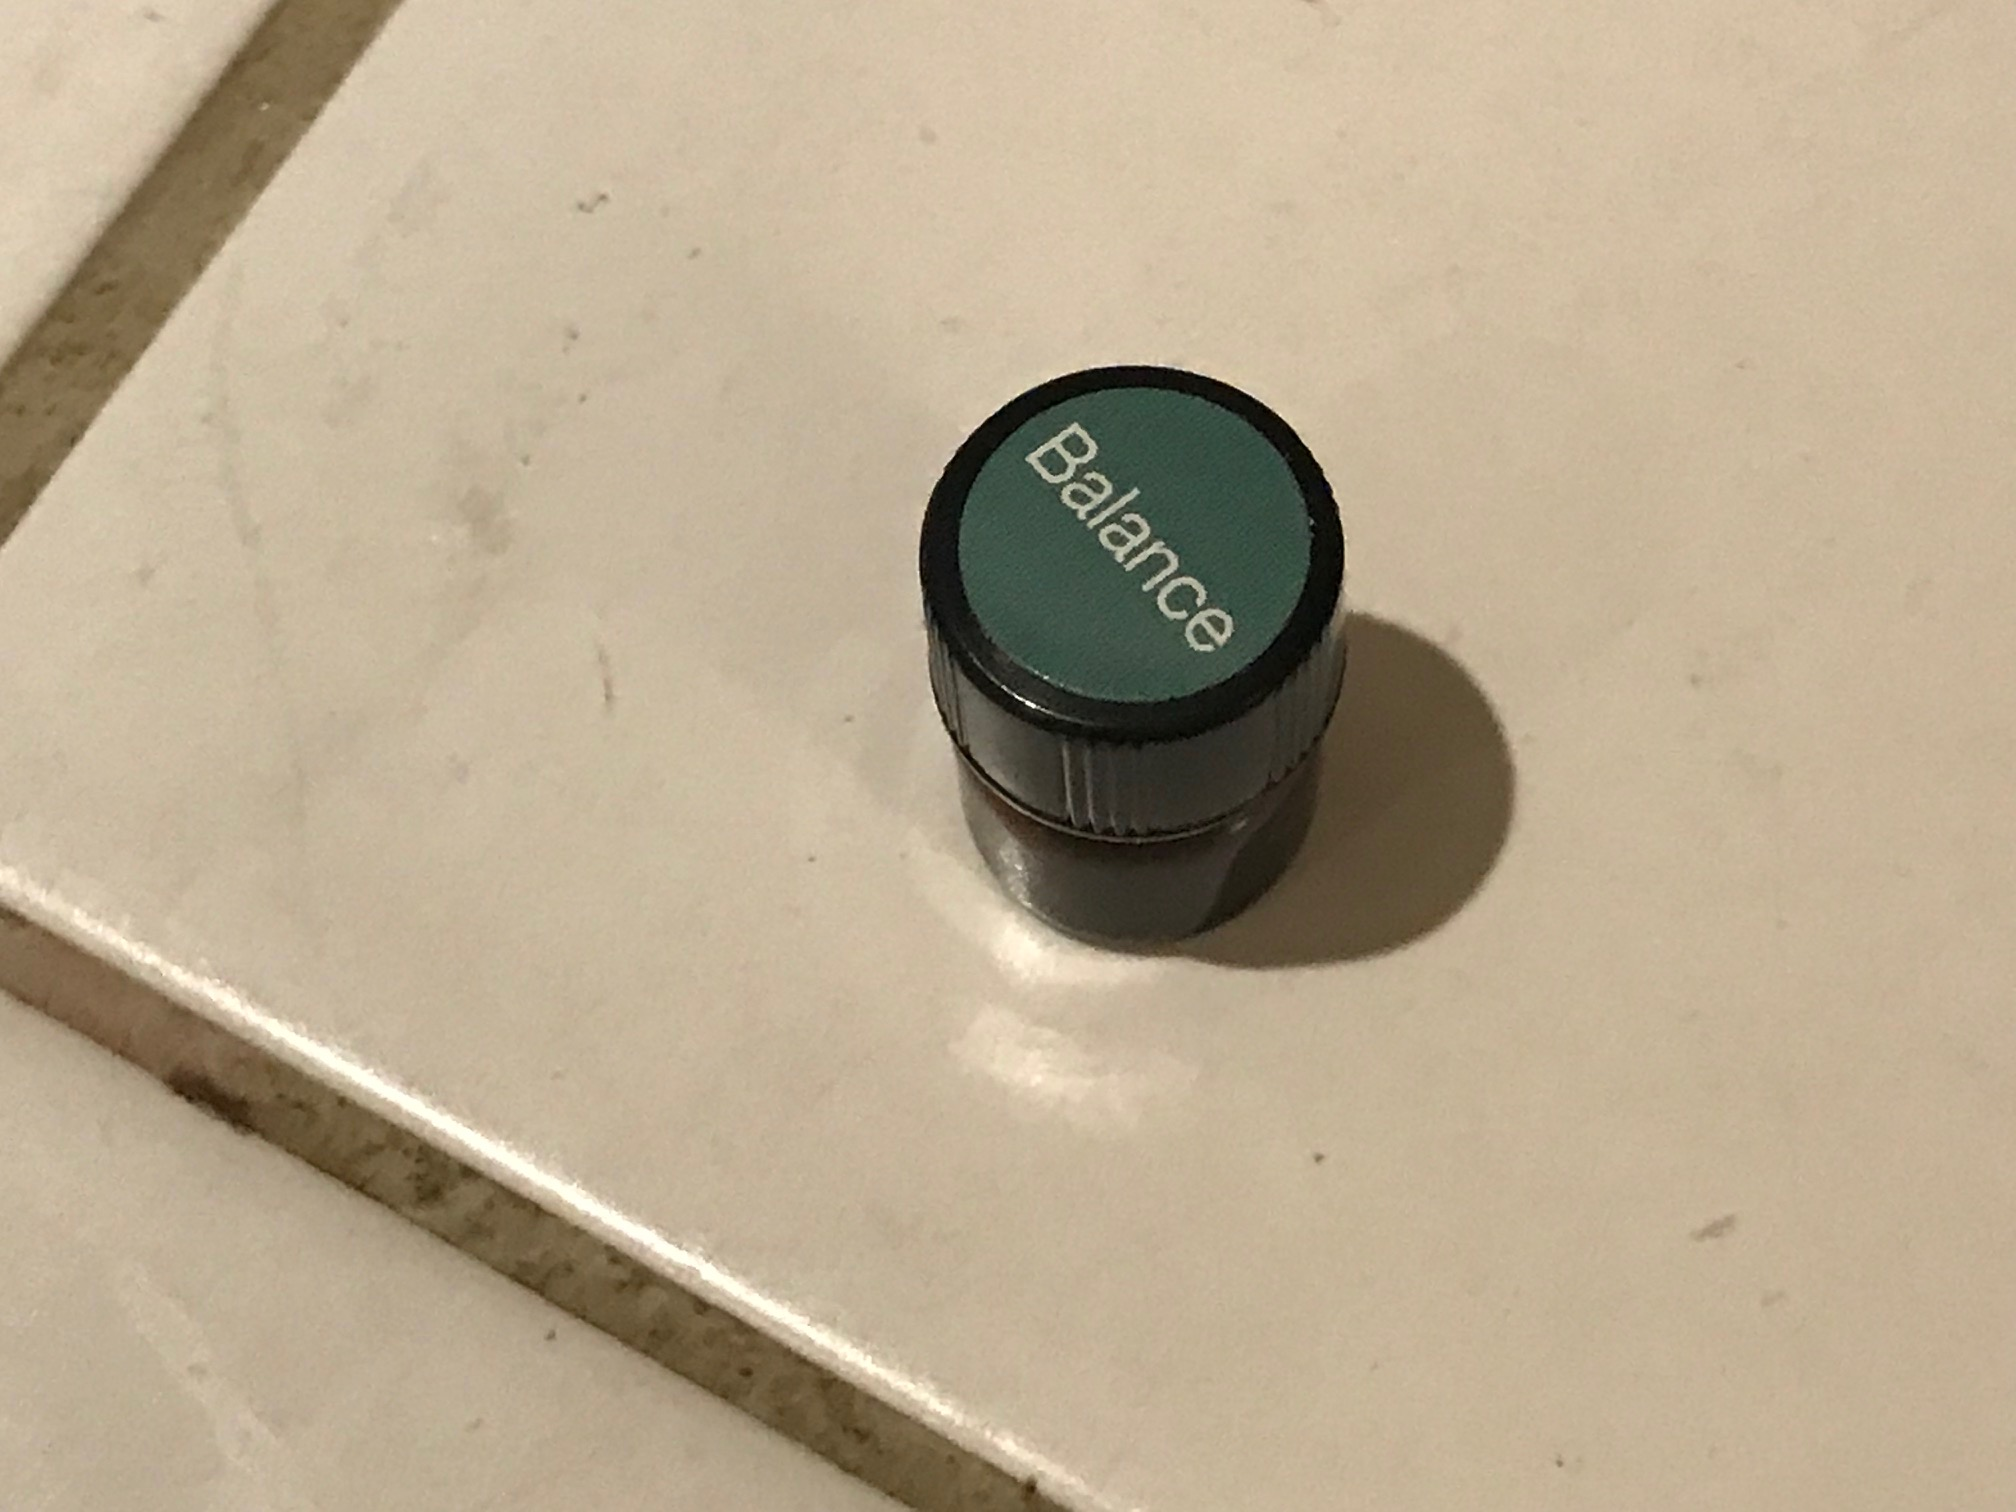 Tiny Brown Glass Sample Bottle of doTerra Balance Oil: Non-Detect for Lead, 20 ppm Cadmium (test is of bottle, not contents)